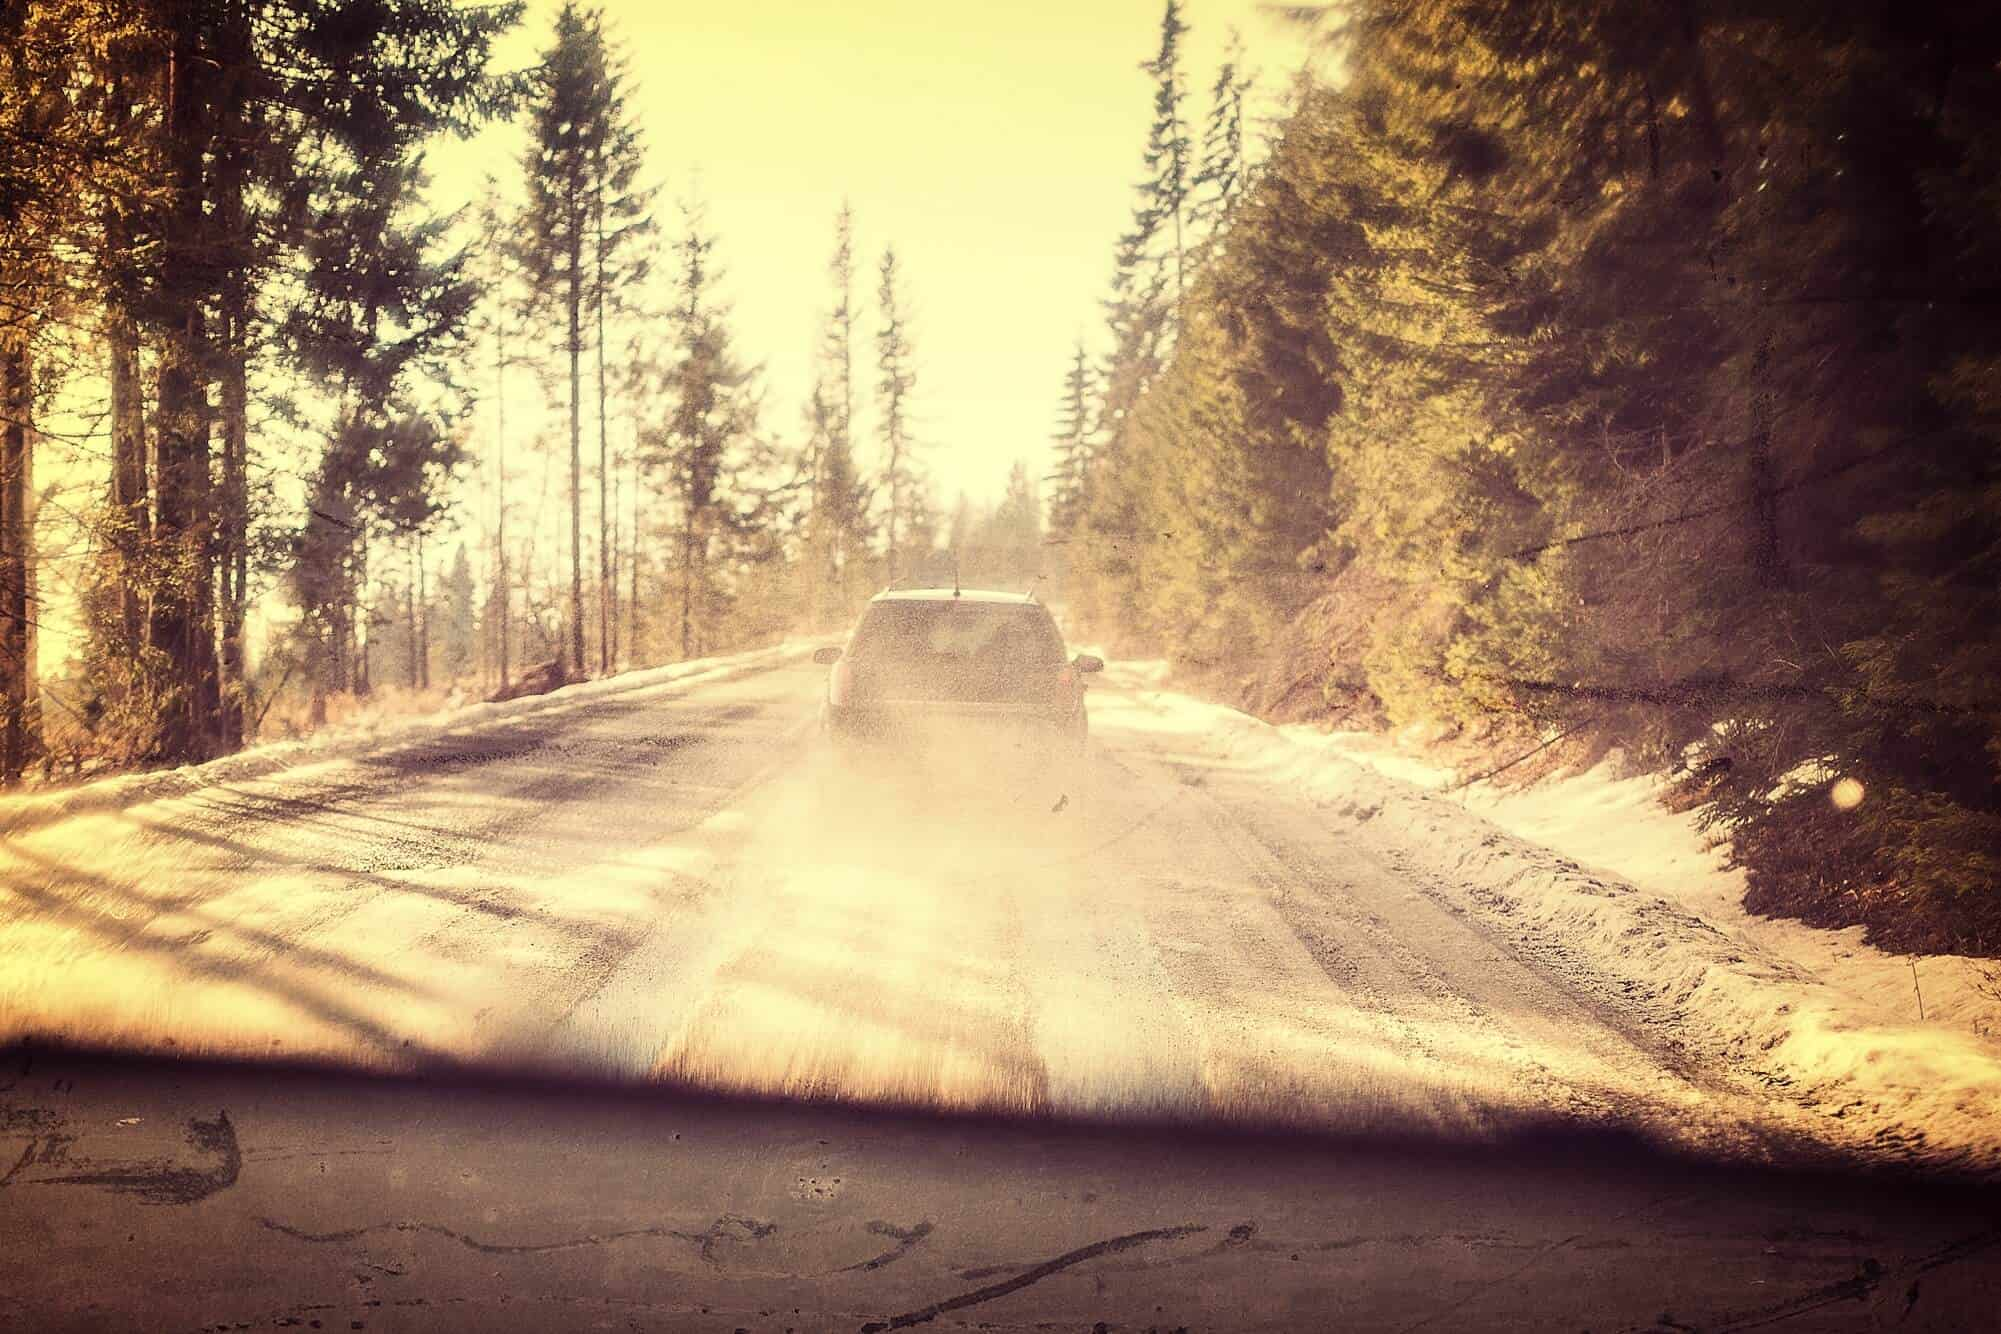 backroad-with-potholes